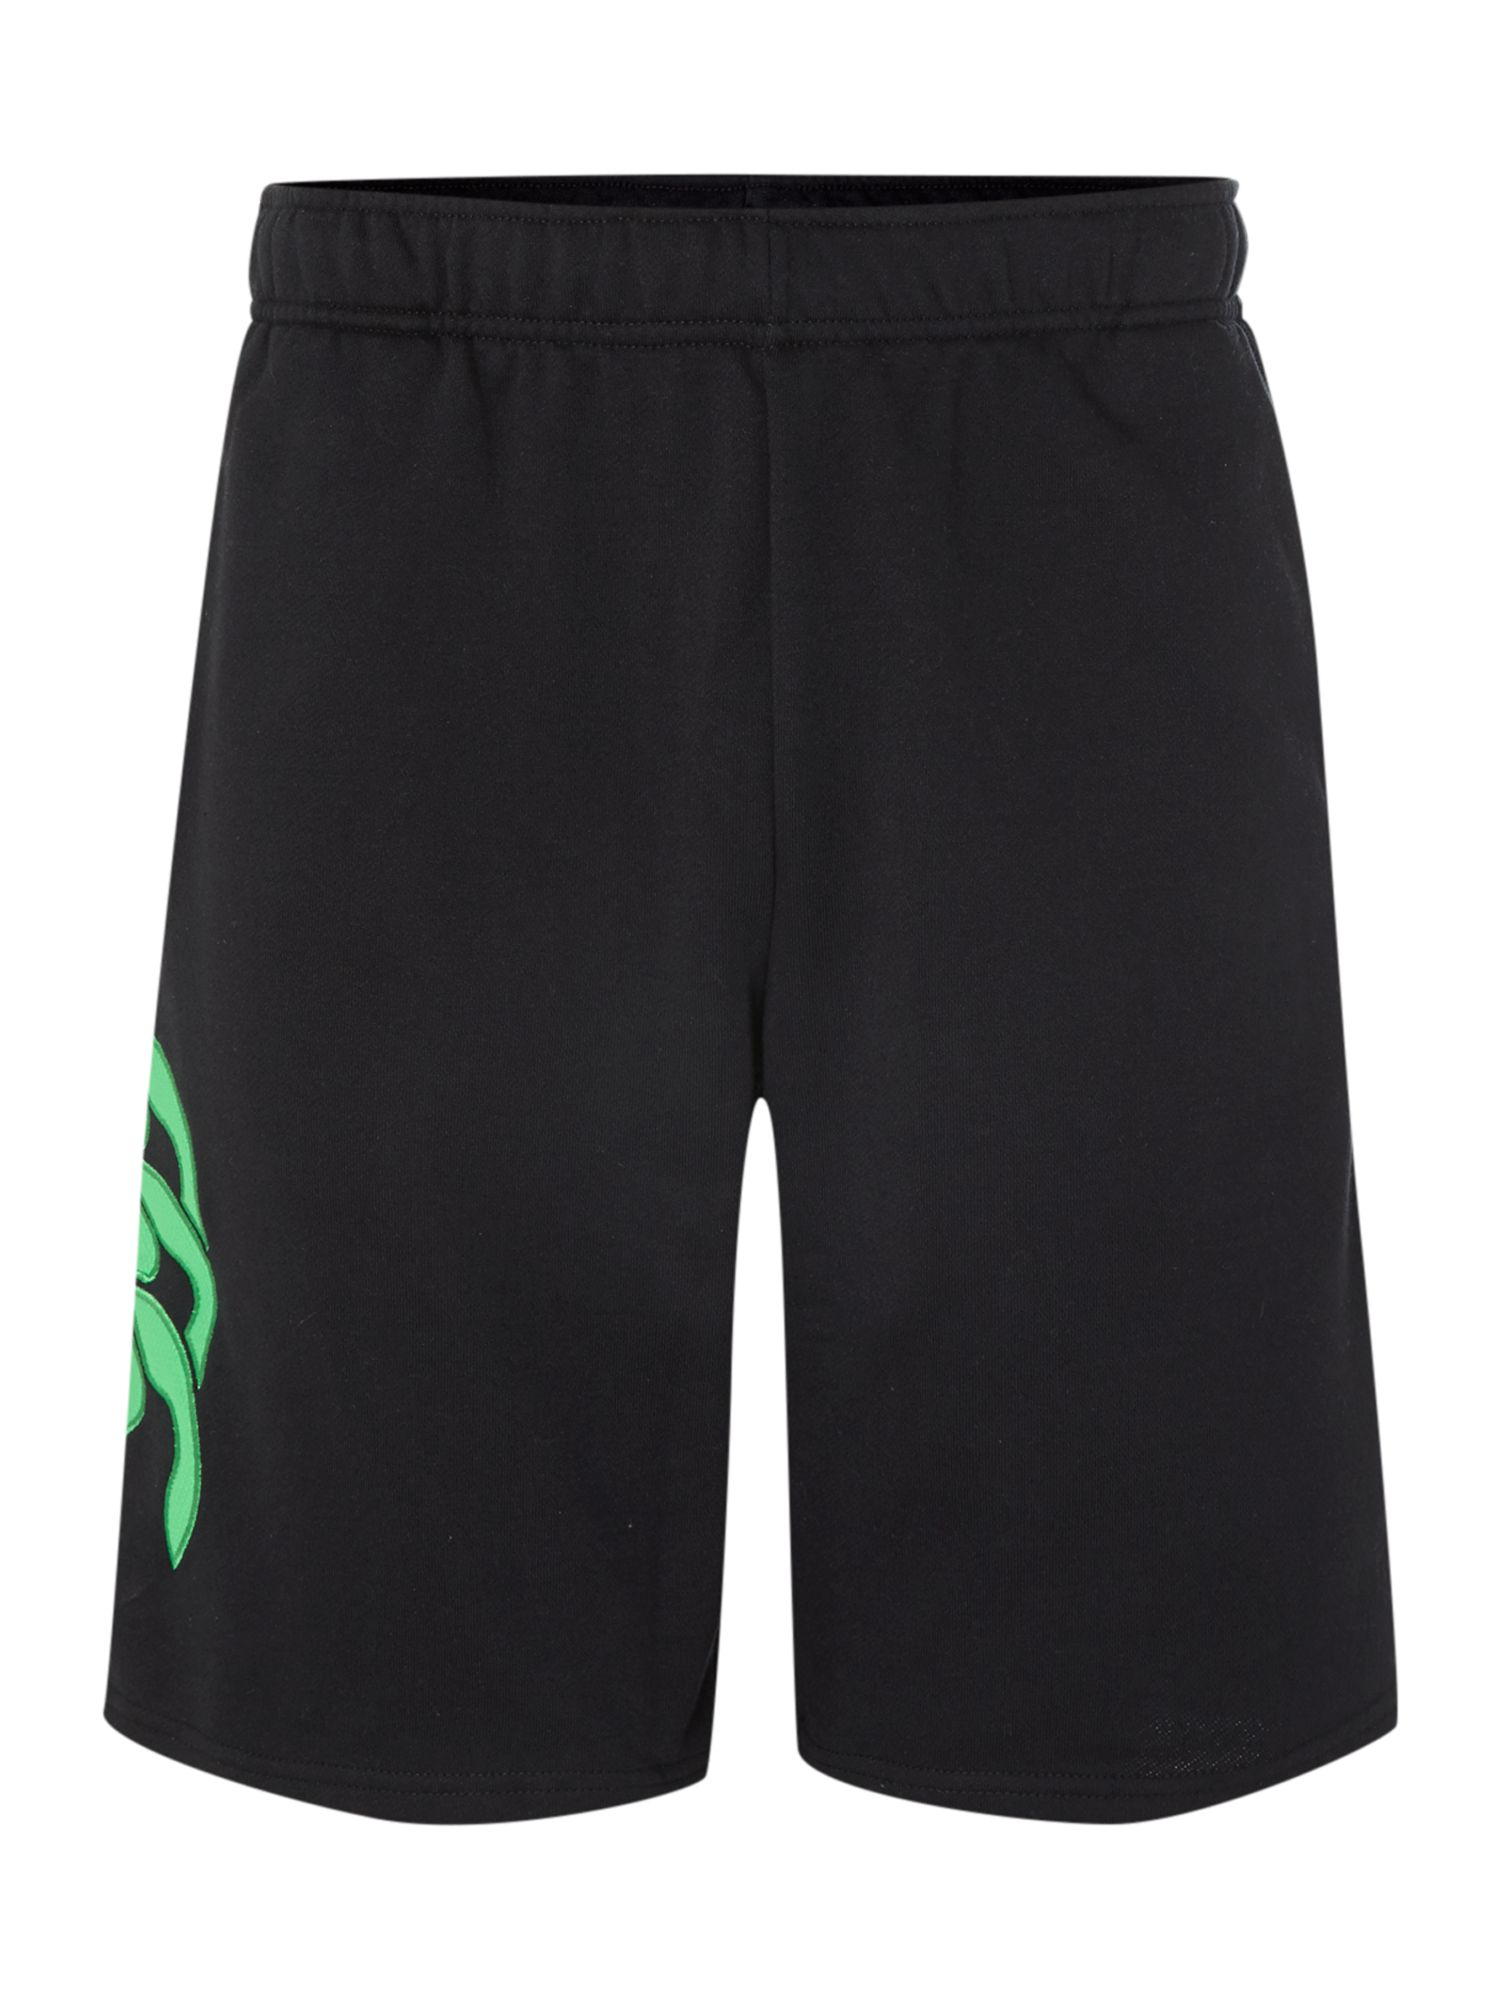 Core sweat shorts